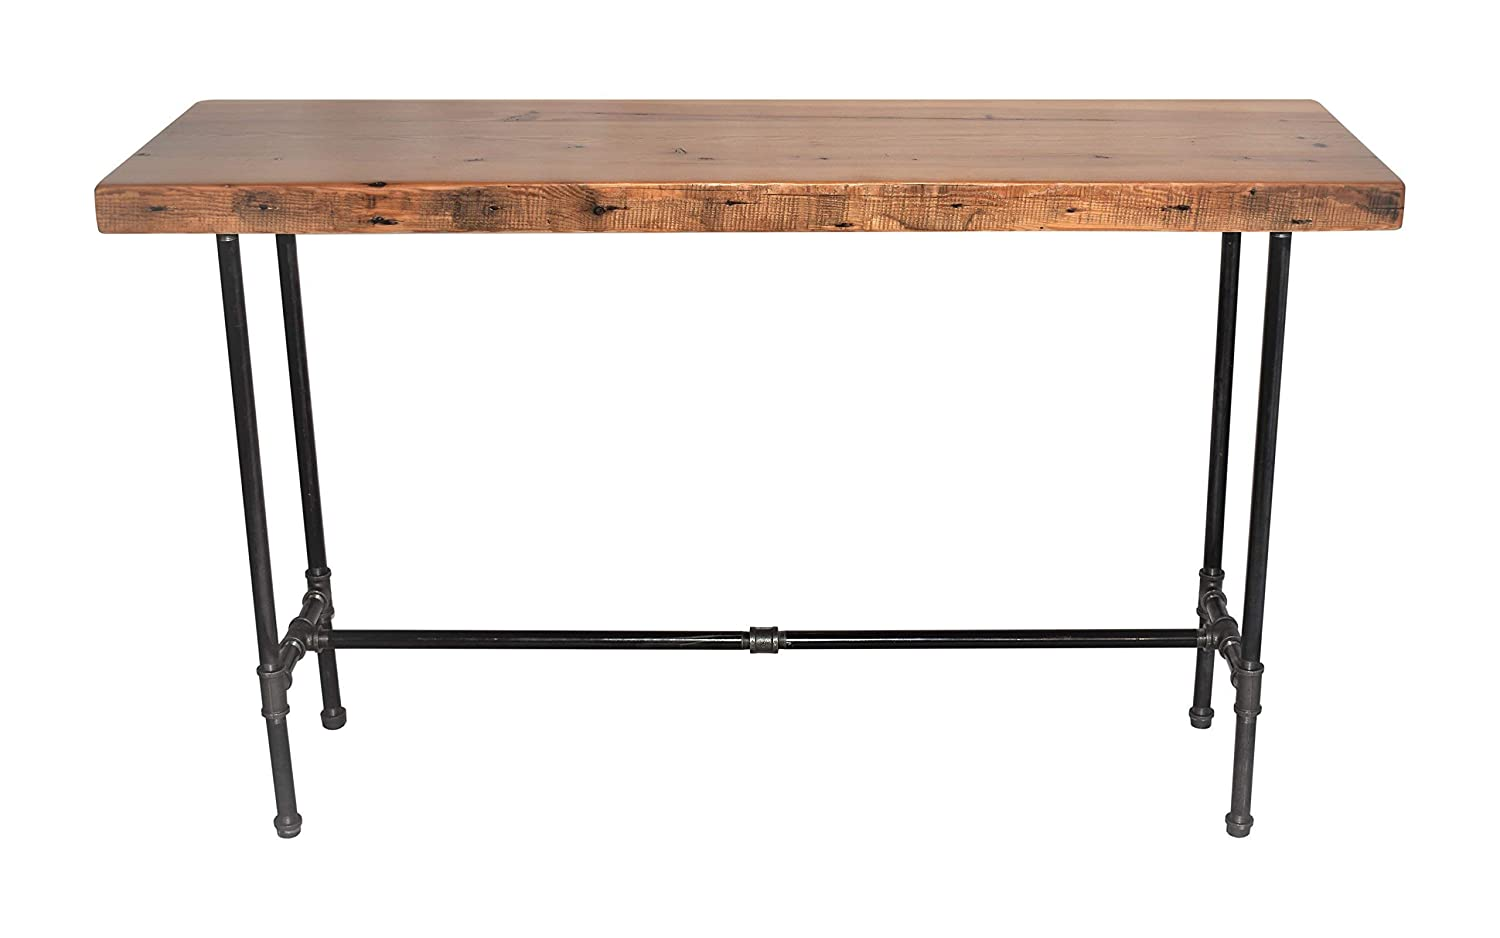 Super Amazon Com Sofa Table Entry Table Hallway Table Nook Gmtry Best Dining Table And Chair Ideas Images Gmtryco